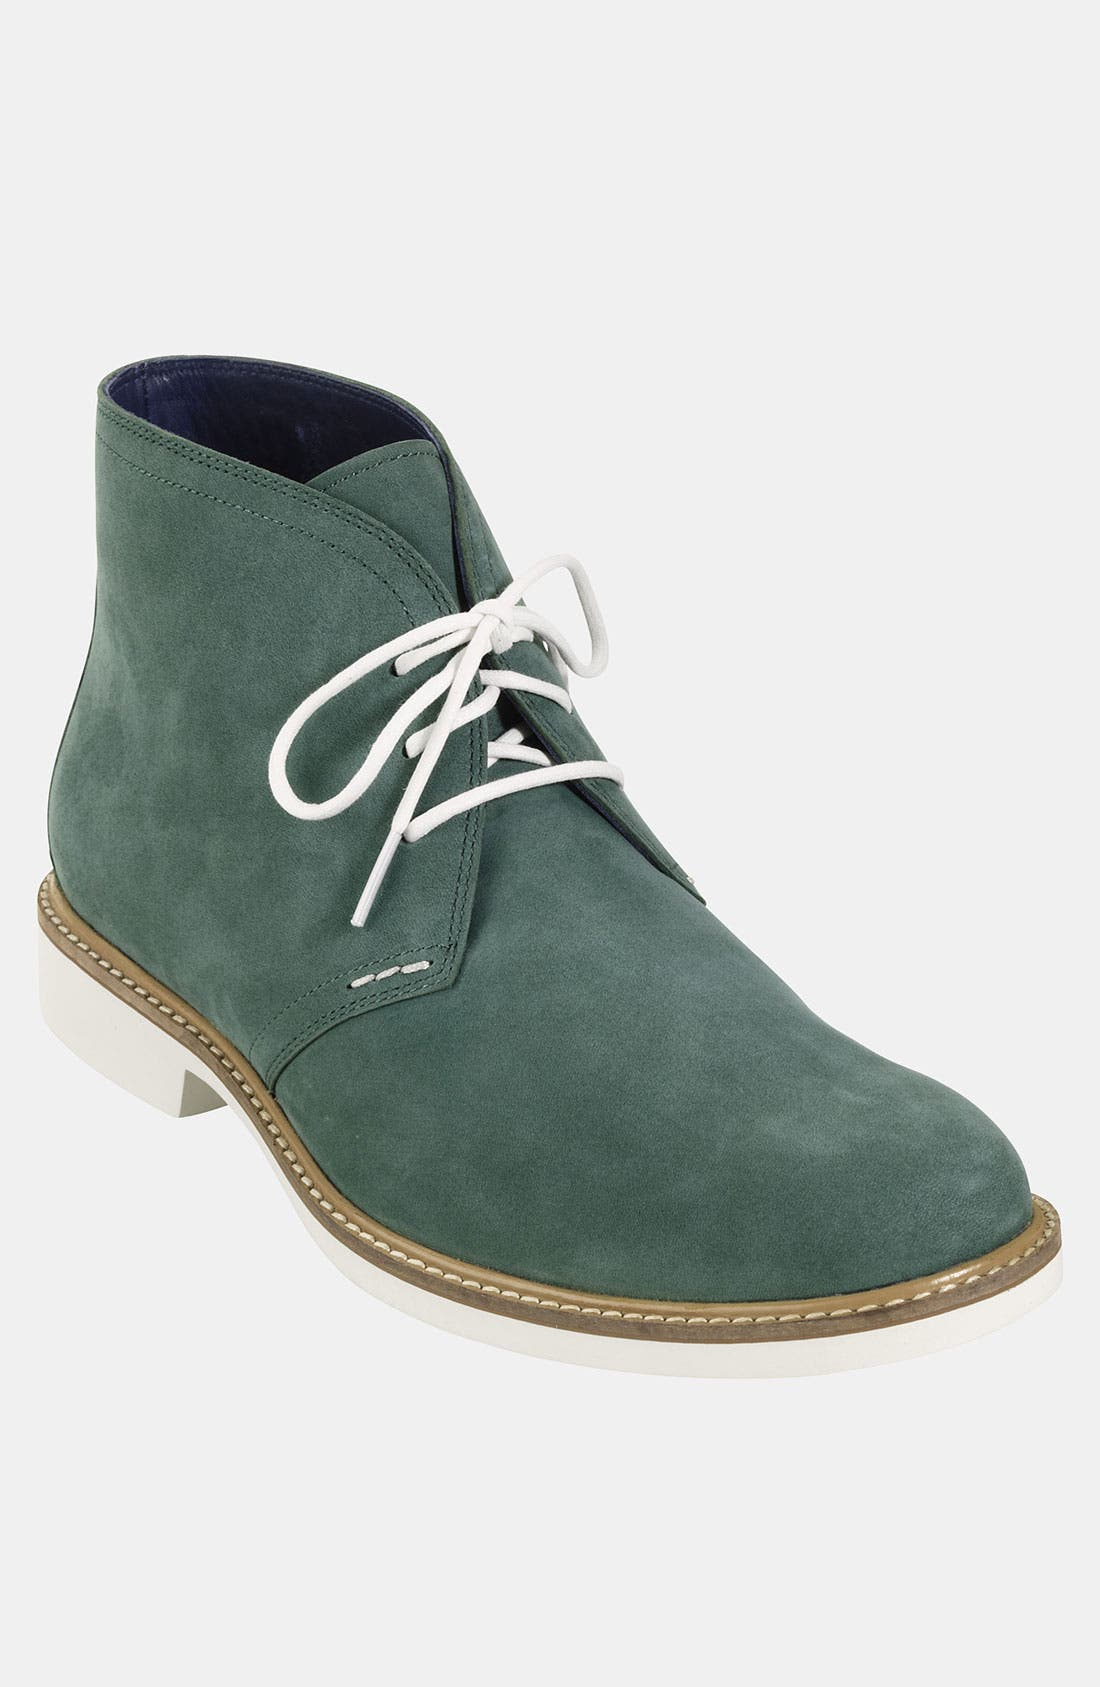 Alternate Image 1 Selected - Cole Haan 'Great Jones' Chukka Boot